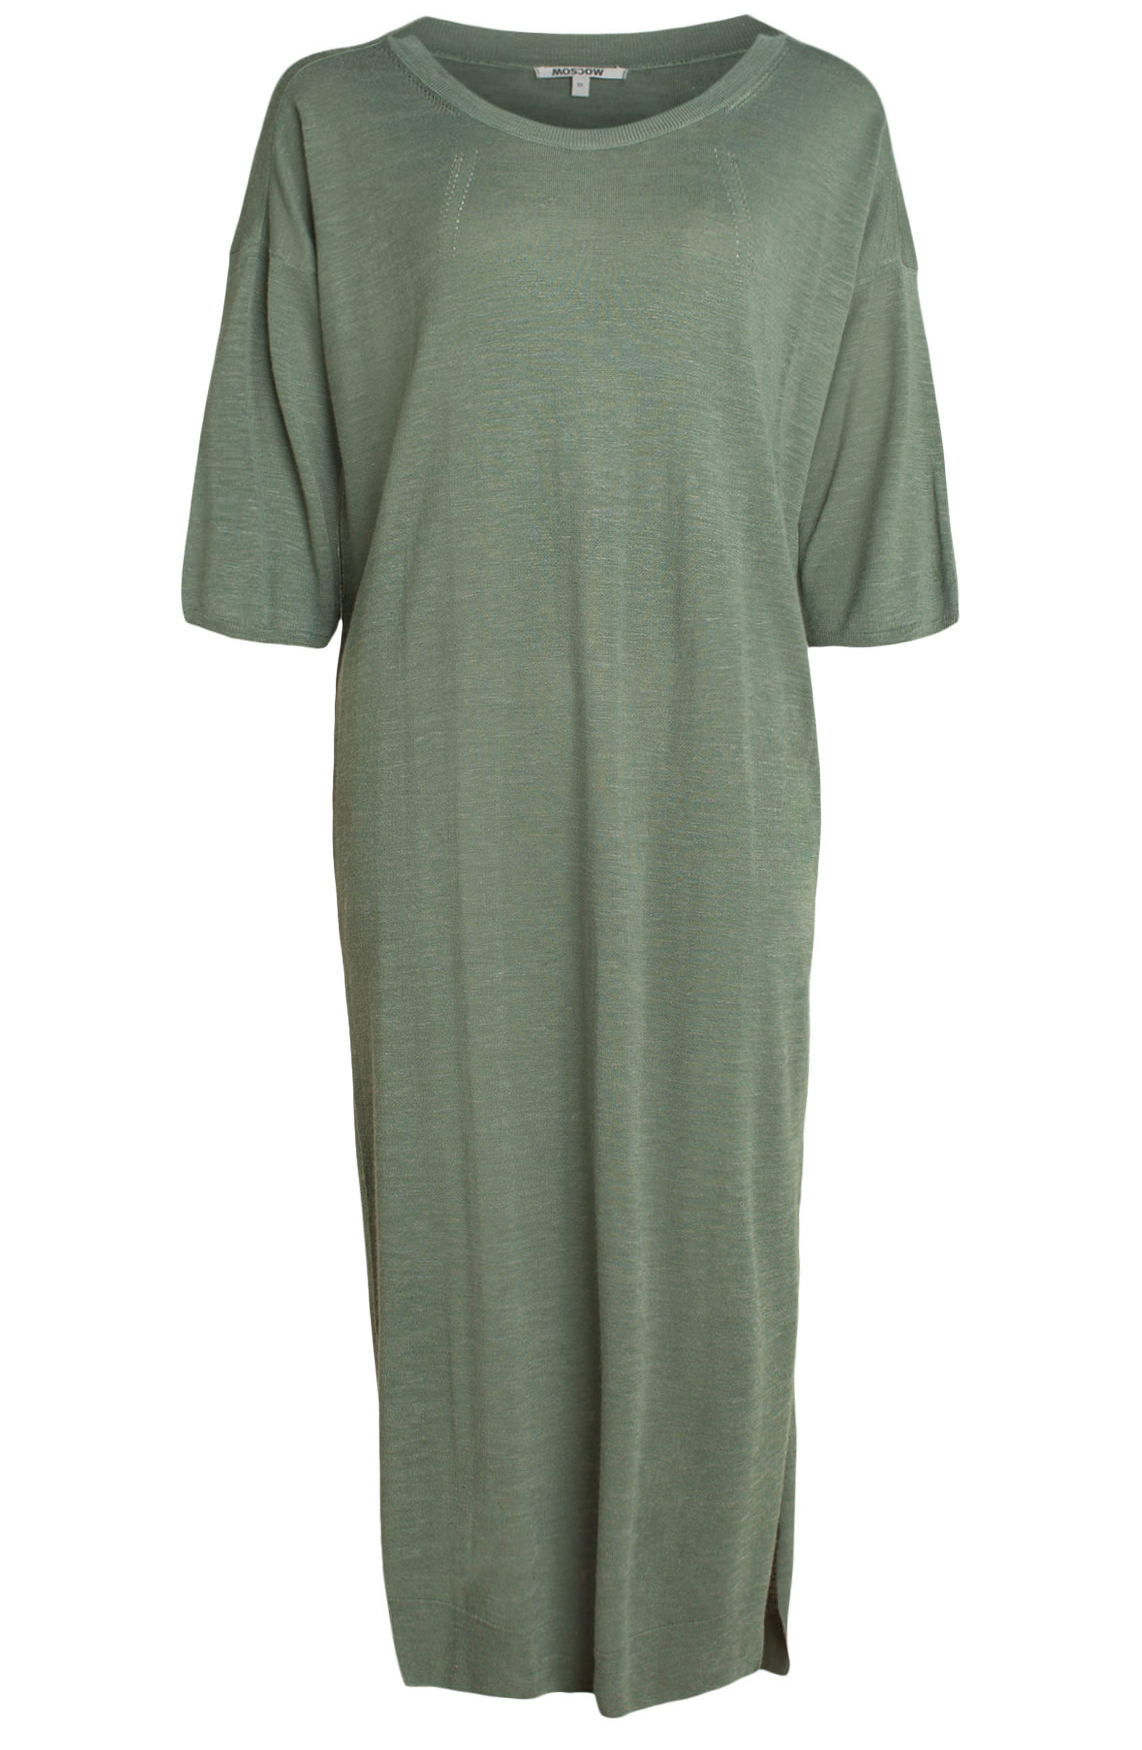 Moscow Dames Dress with short-sleeves groen